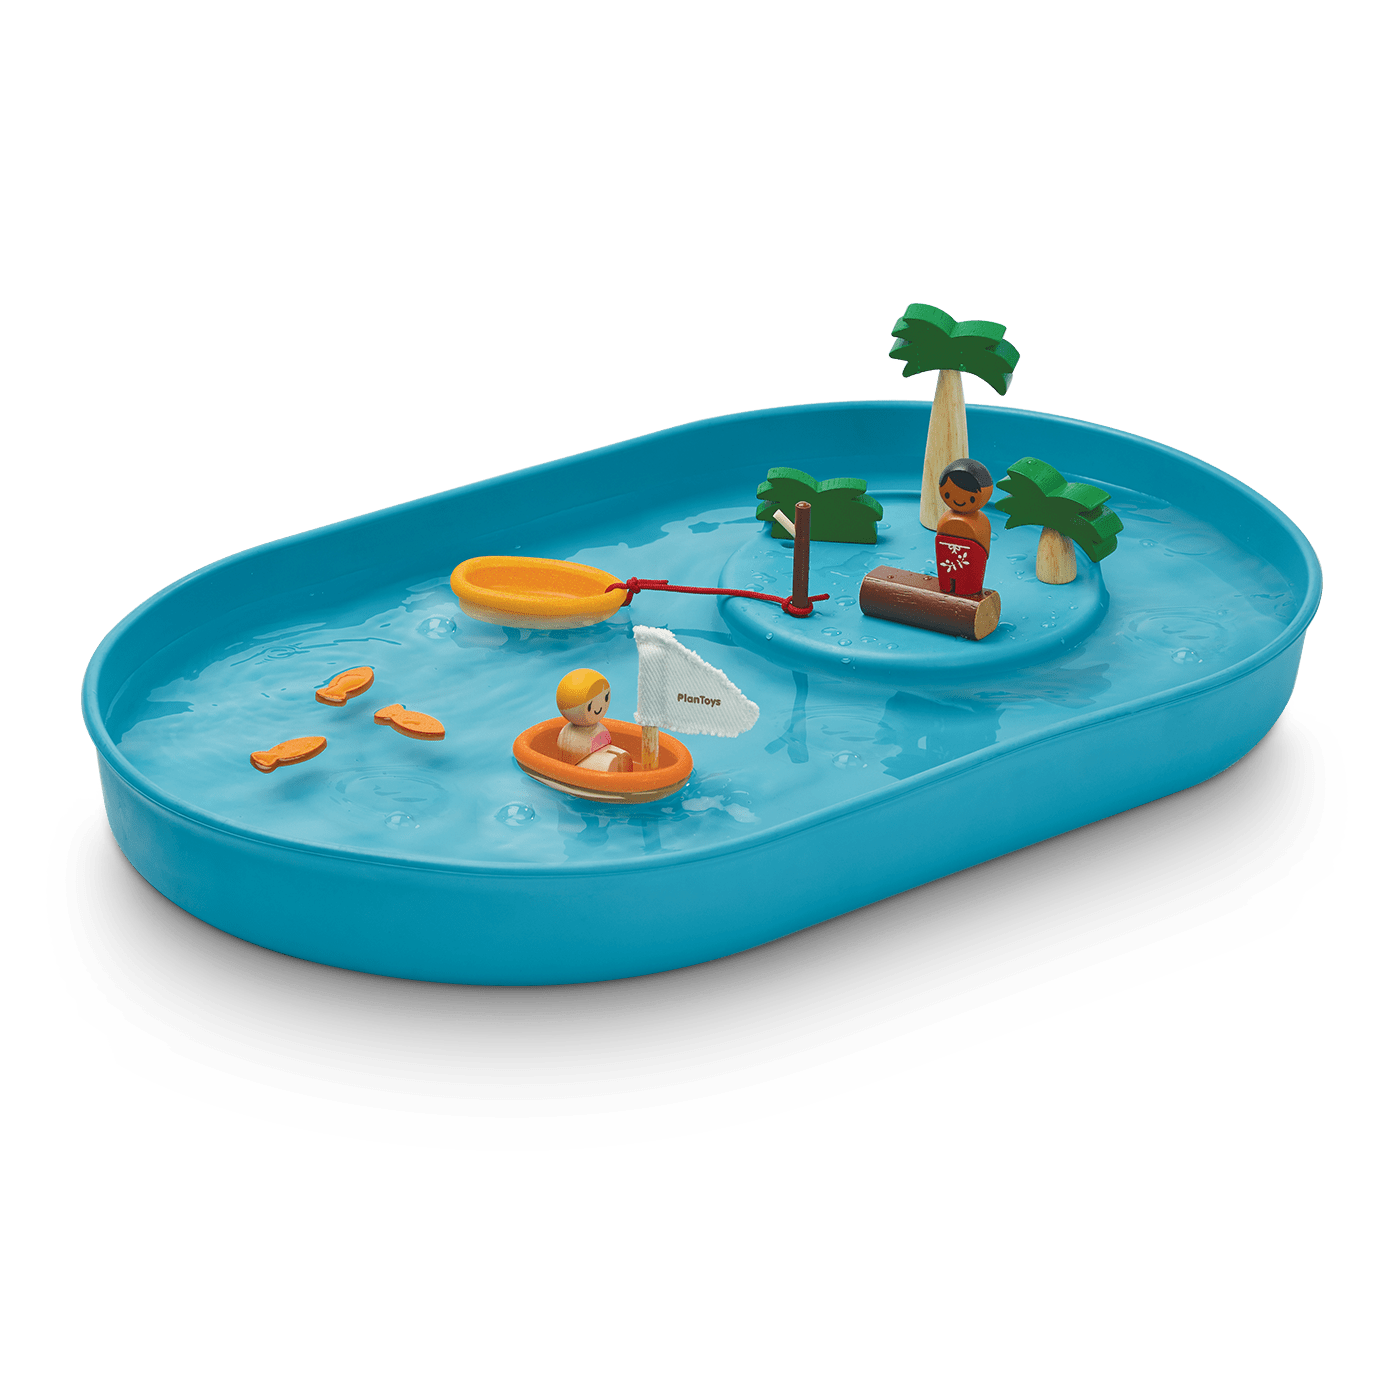 5801_PlanToys_WATER_PLAY_SET_Water_Play_Coordination_Creative_Explore_Fine_Motor_Imagination_3yrs_Wooden_toys_Education_toys_Safety_Toys_Non-toxic_0.png